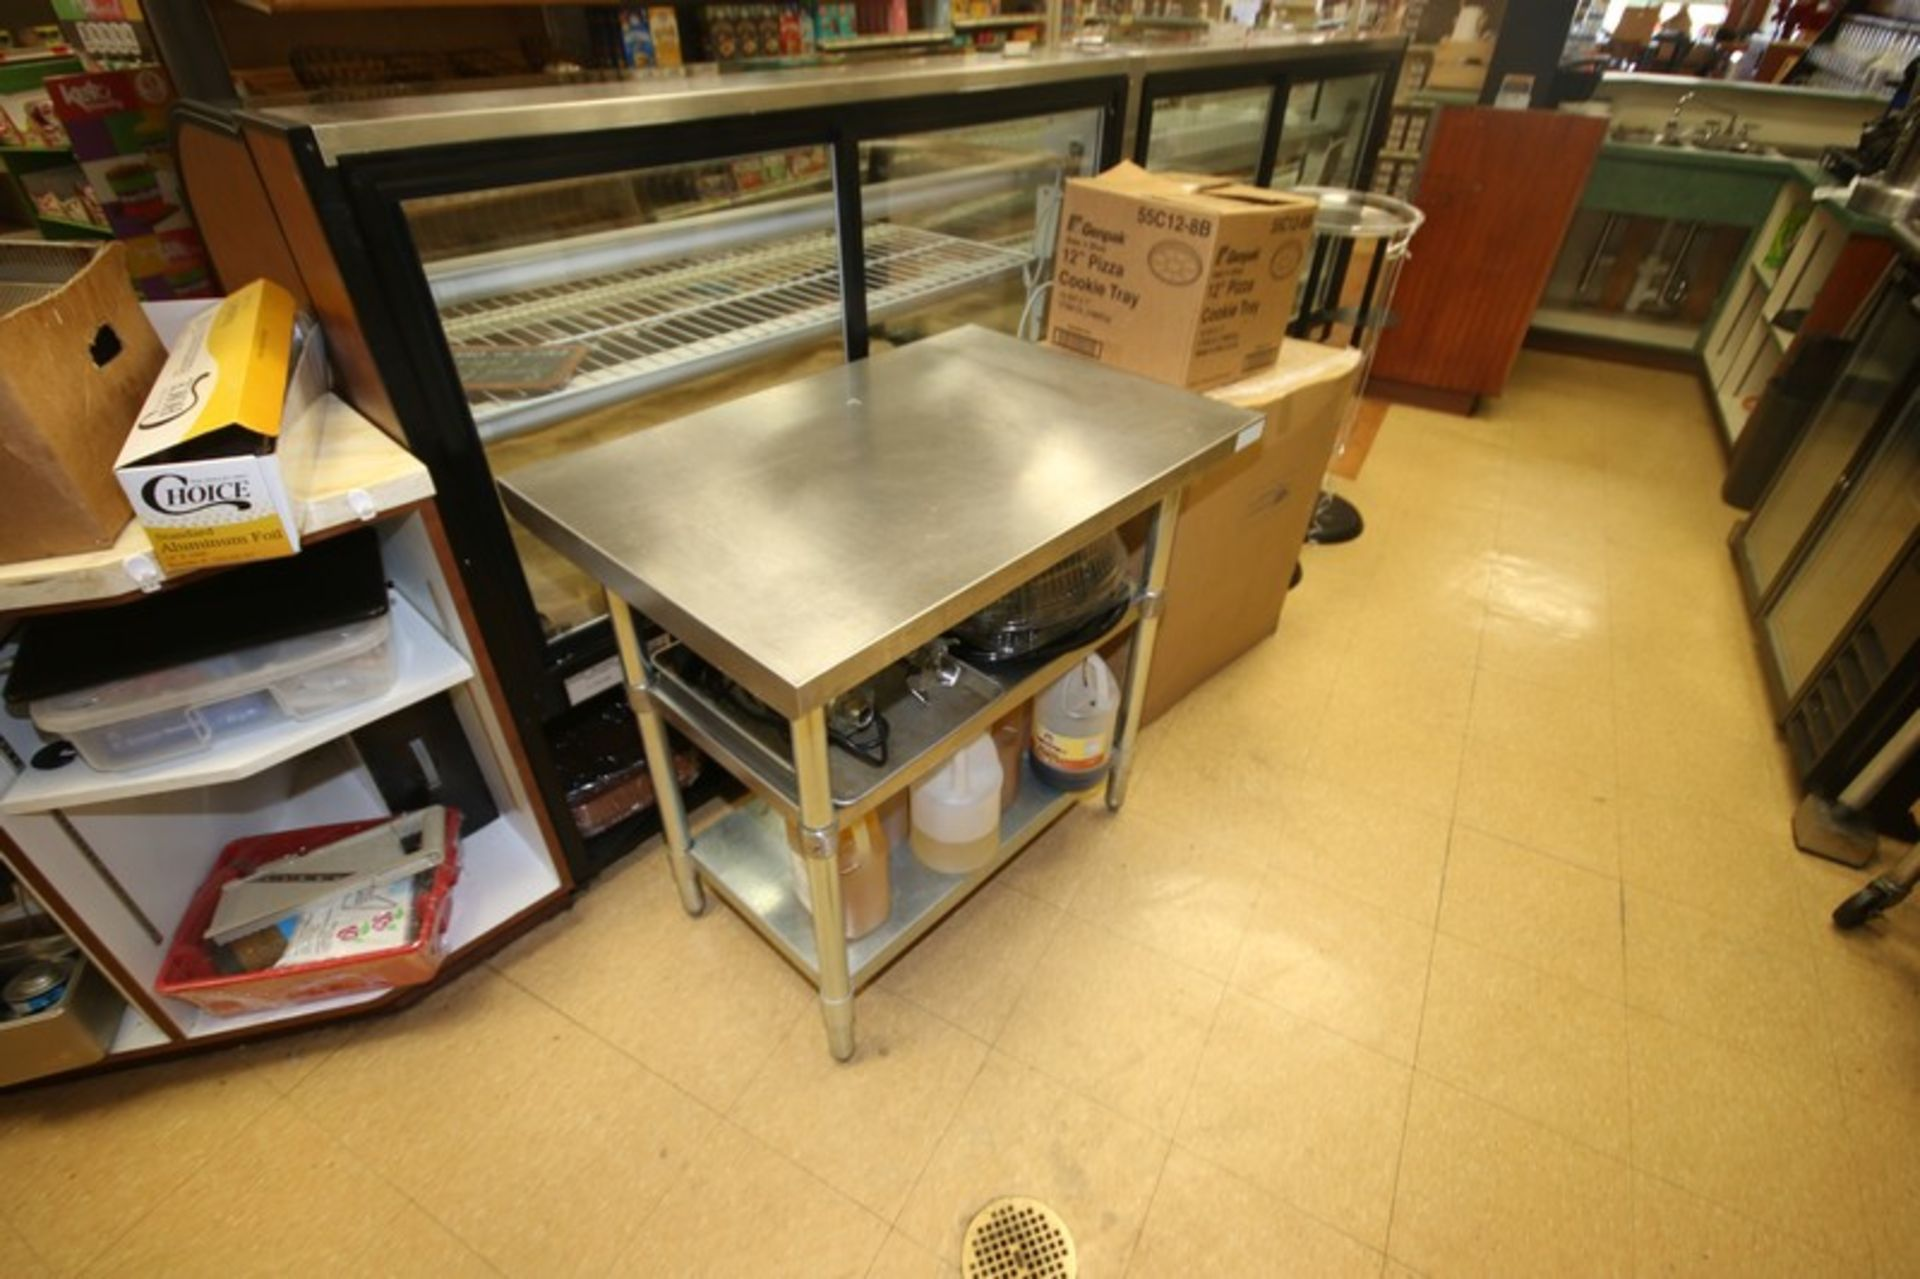 """S/S Table, with (2) S/S Bottom Shelves, Overall Dims.: Aprox. 36"""" L x 24"""" W x 34-1/2"""" H (Locatd in - Image 2 of 2"""